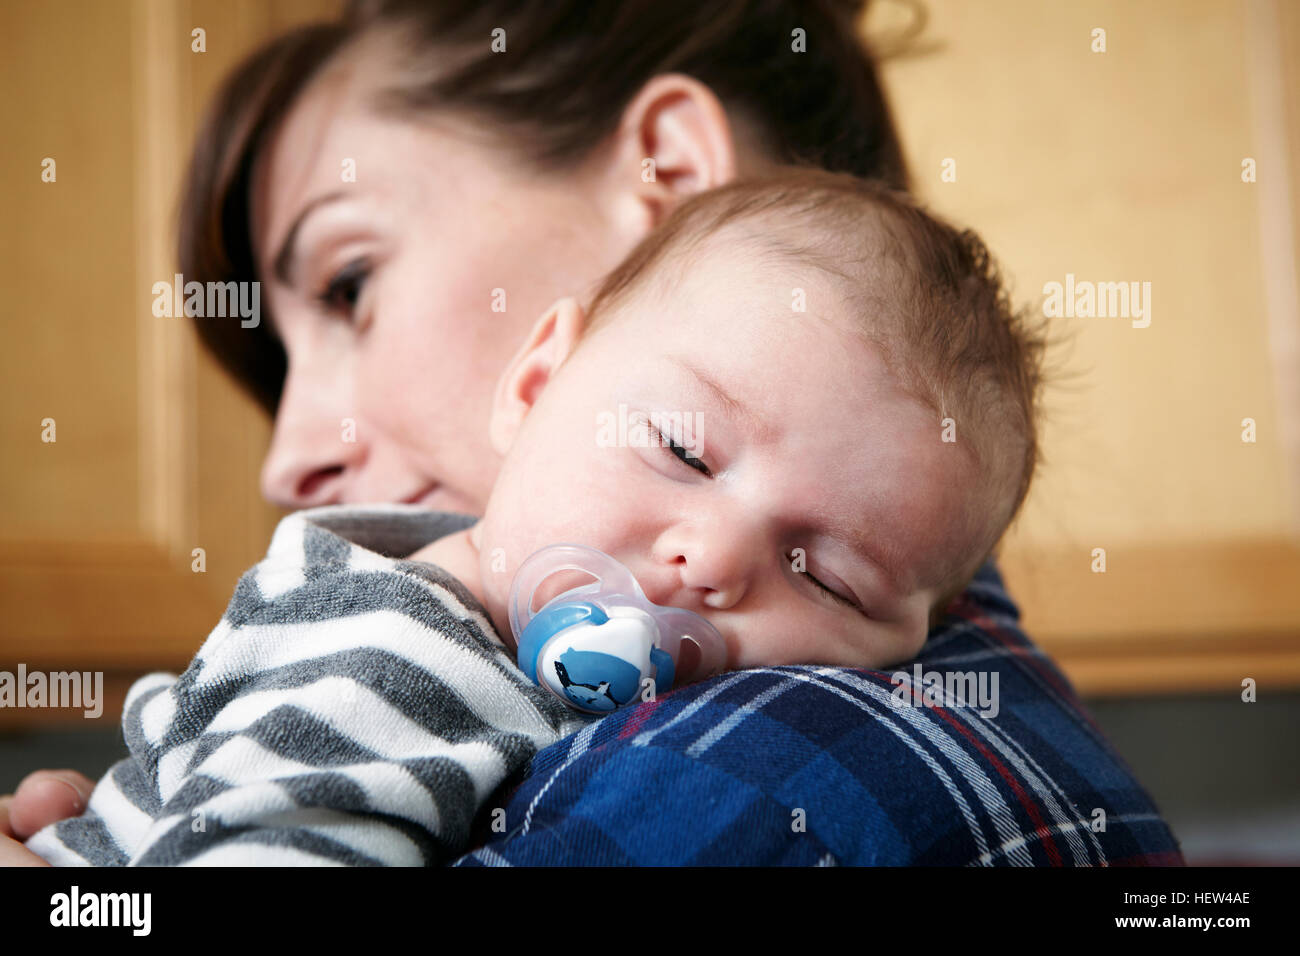 Mother holding sleeping baby boy Photo Stock